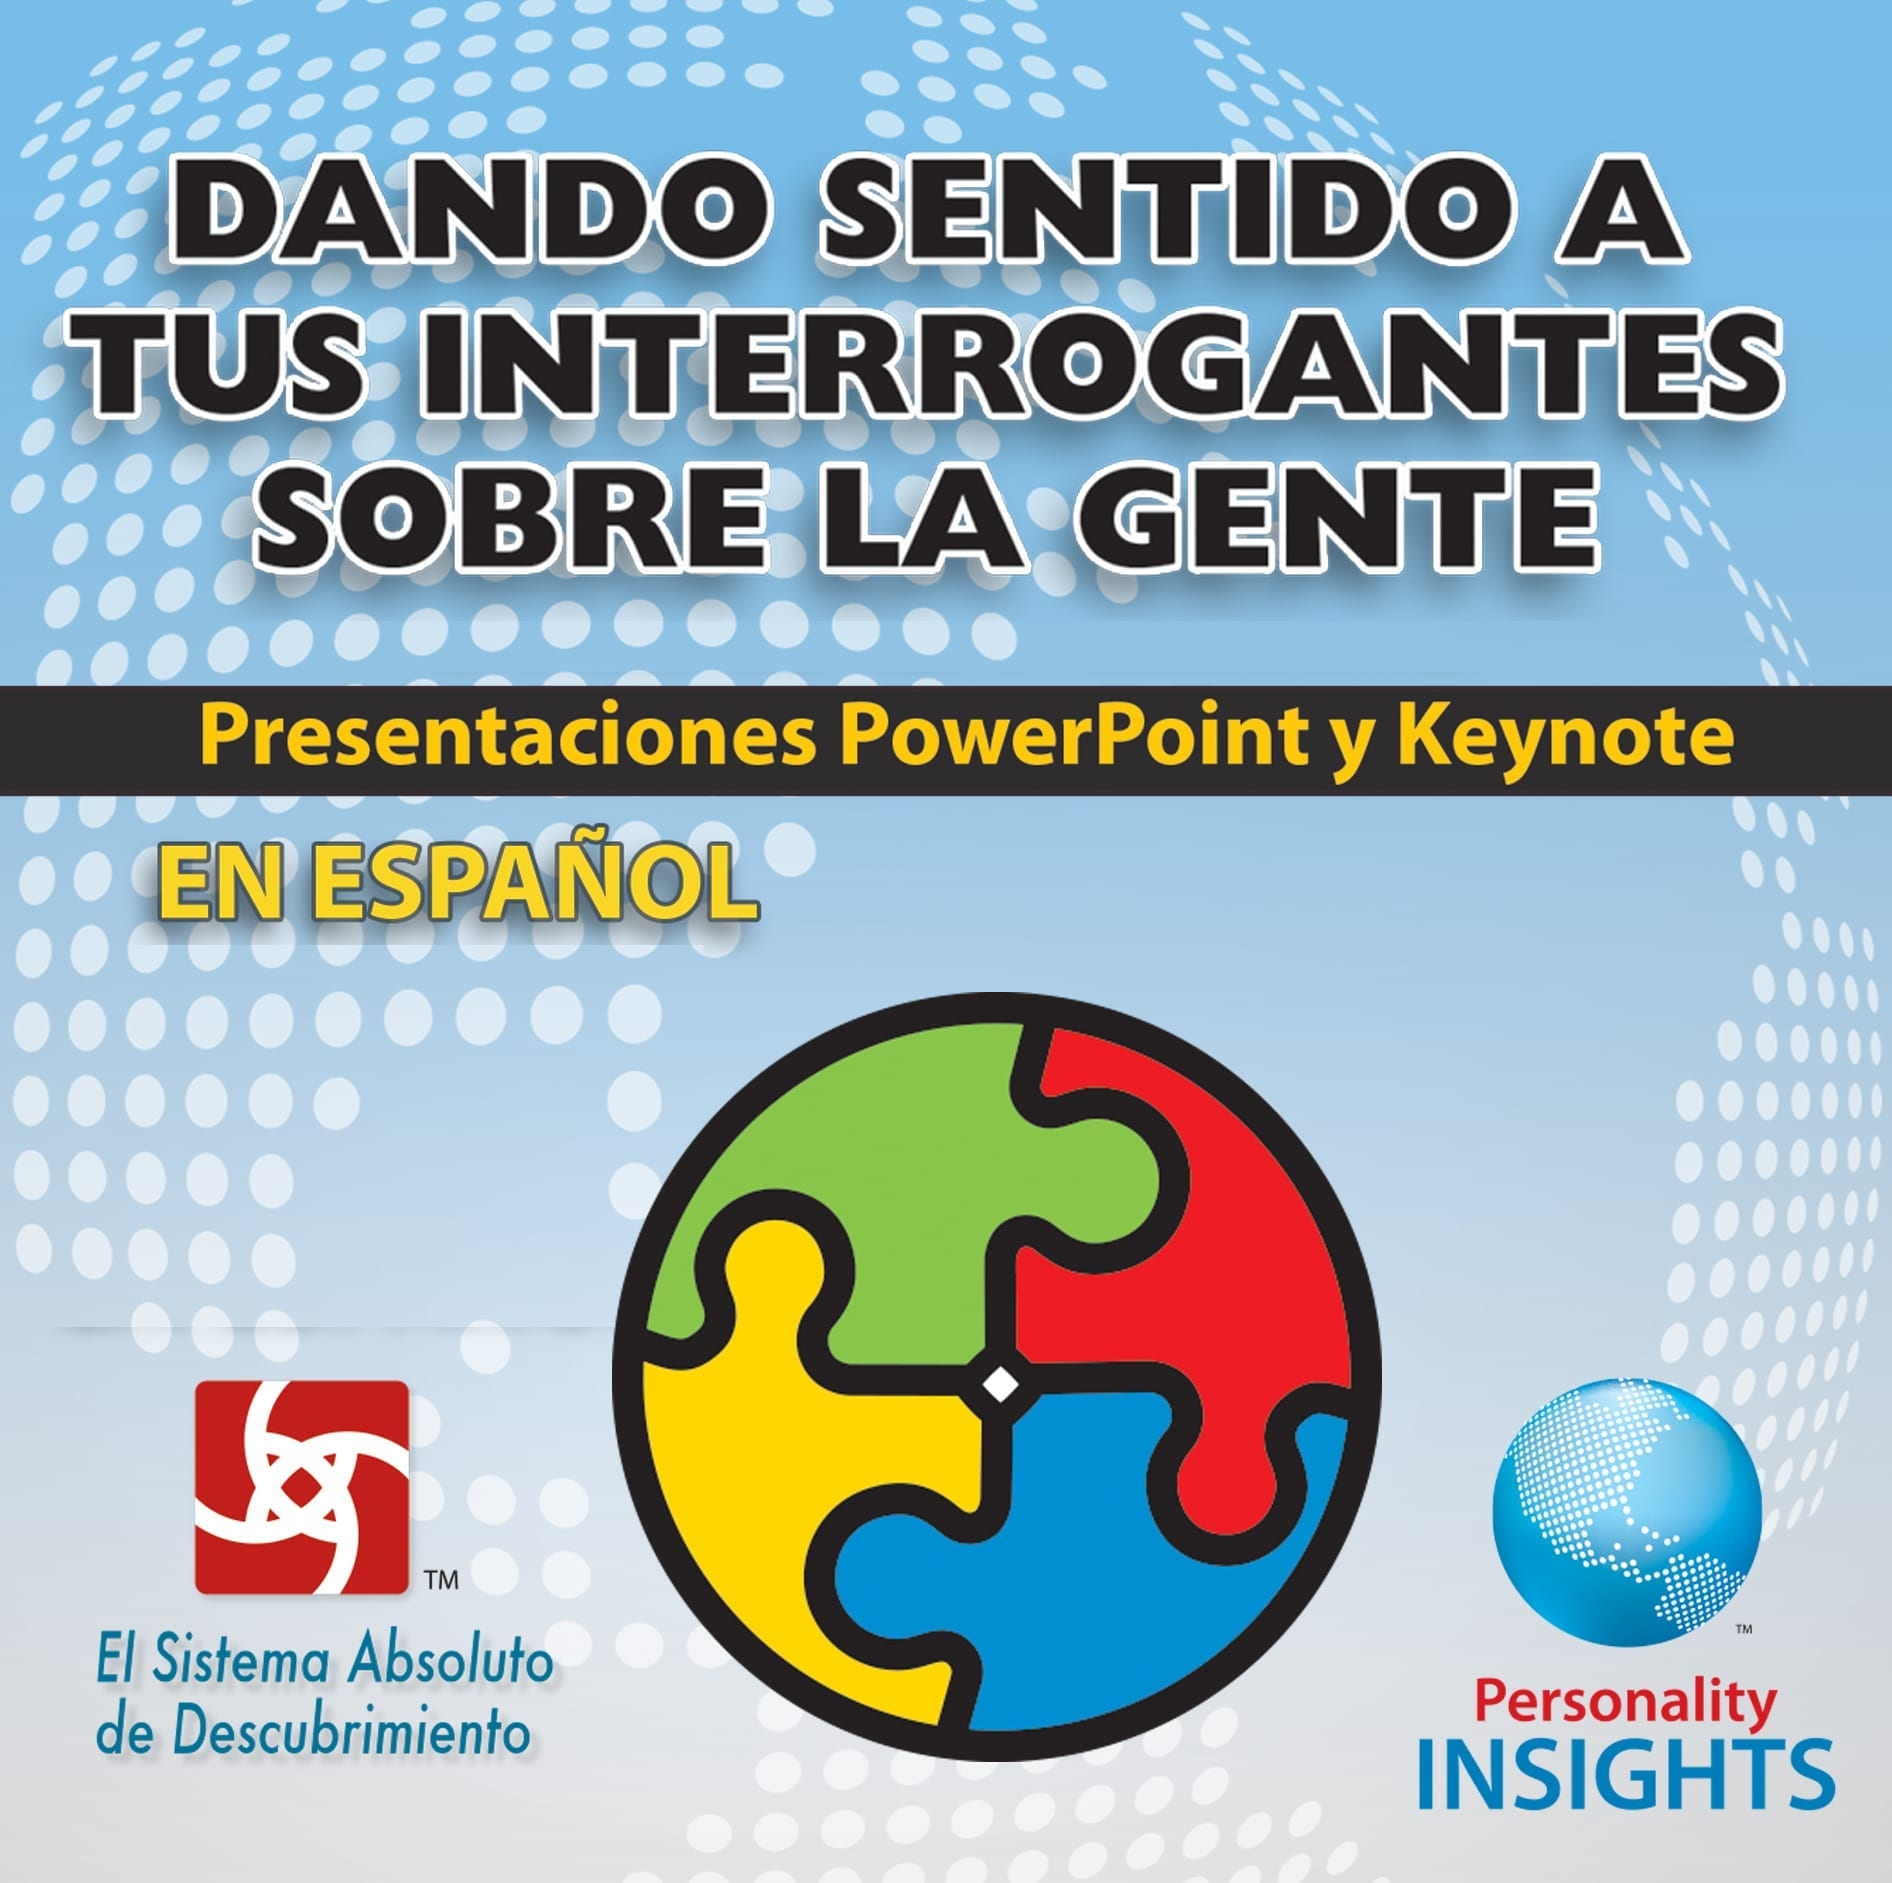 Power Point & Keynote Presentation For *SPANISH* Making Sense Of Your People Puzzles